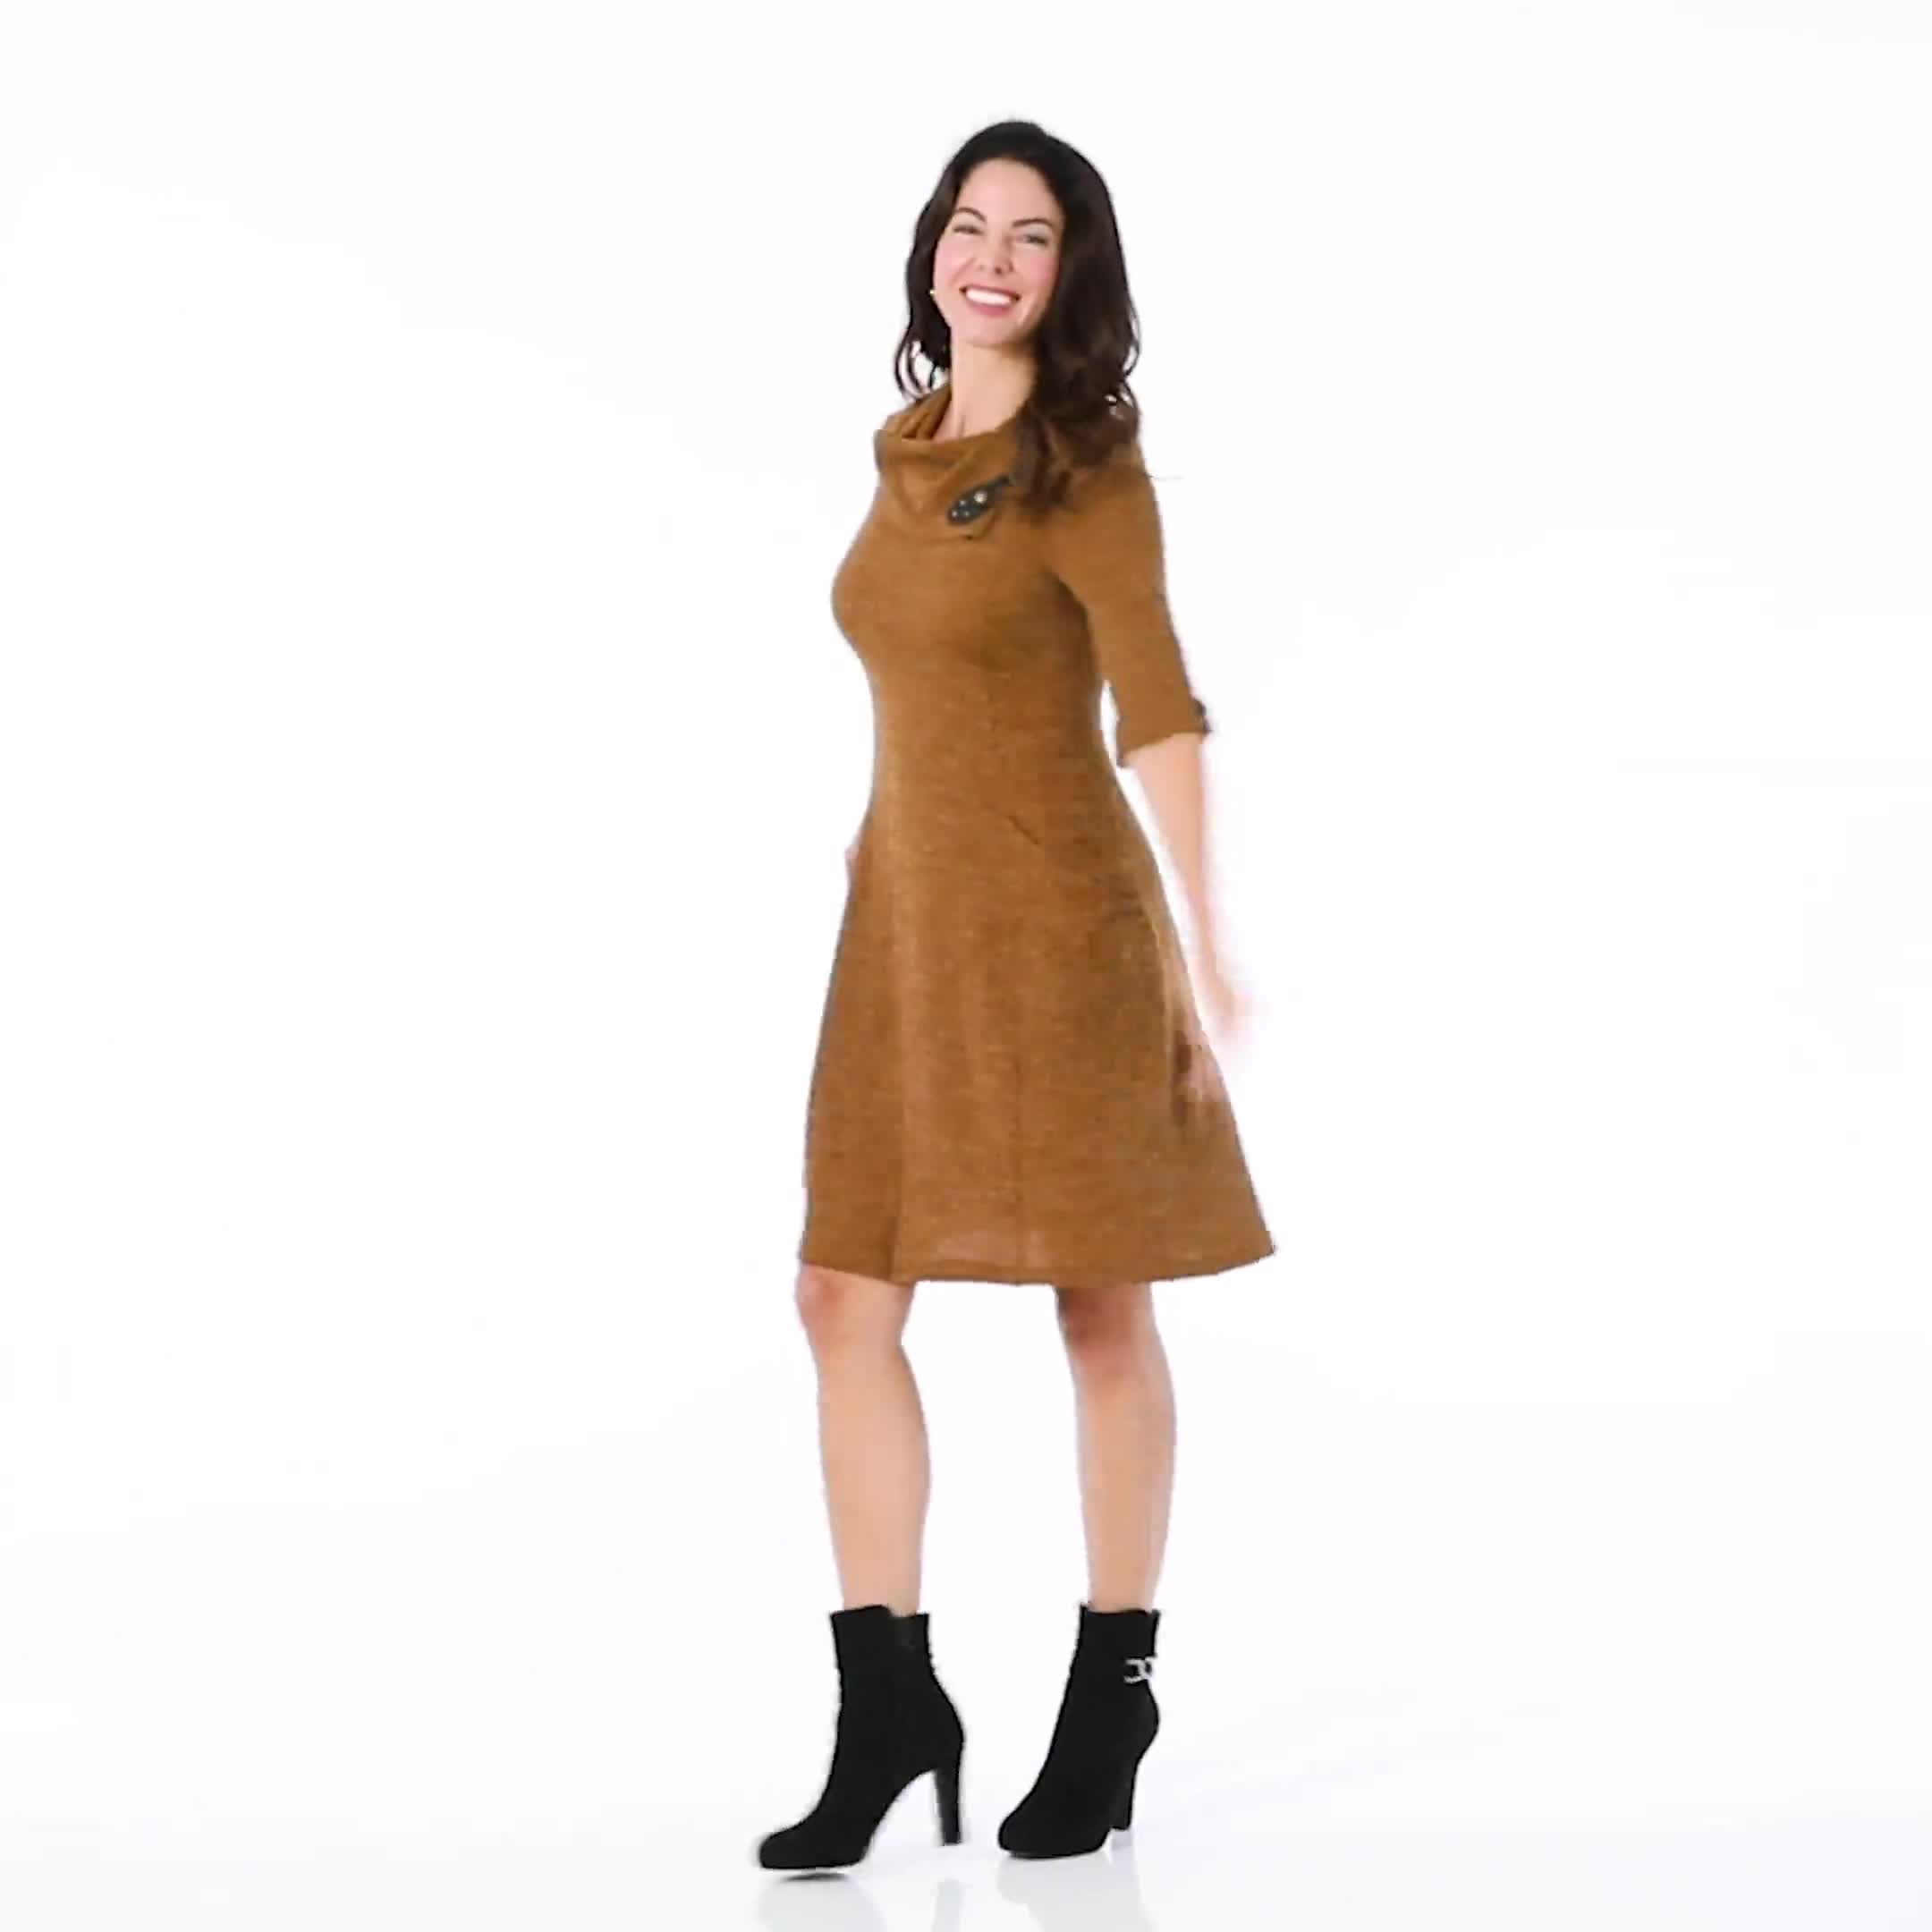 Cowl Neck with Buckle Knit Dress - Video